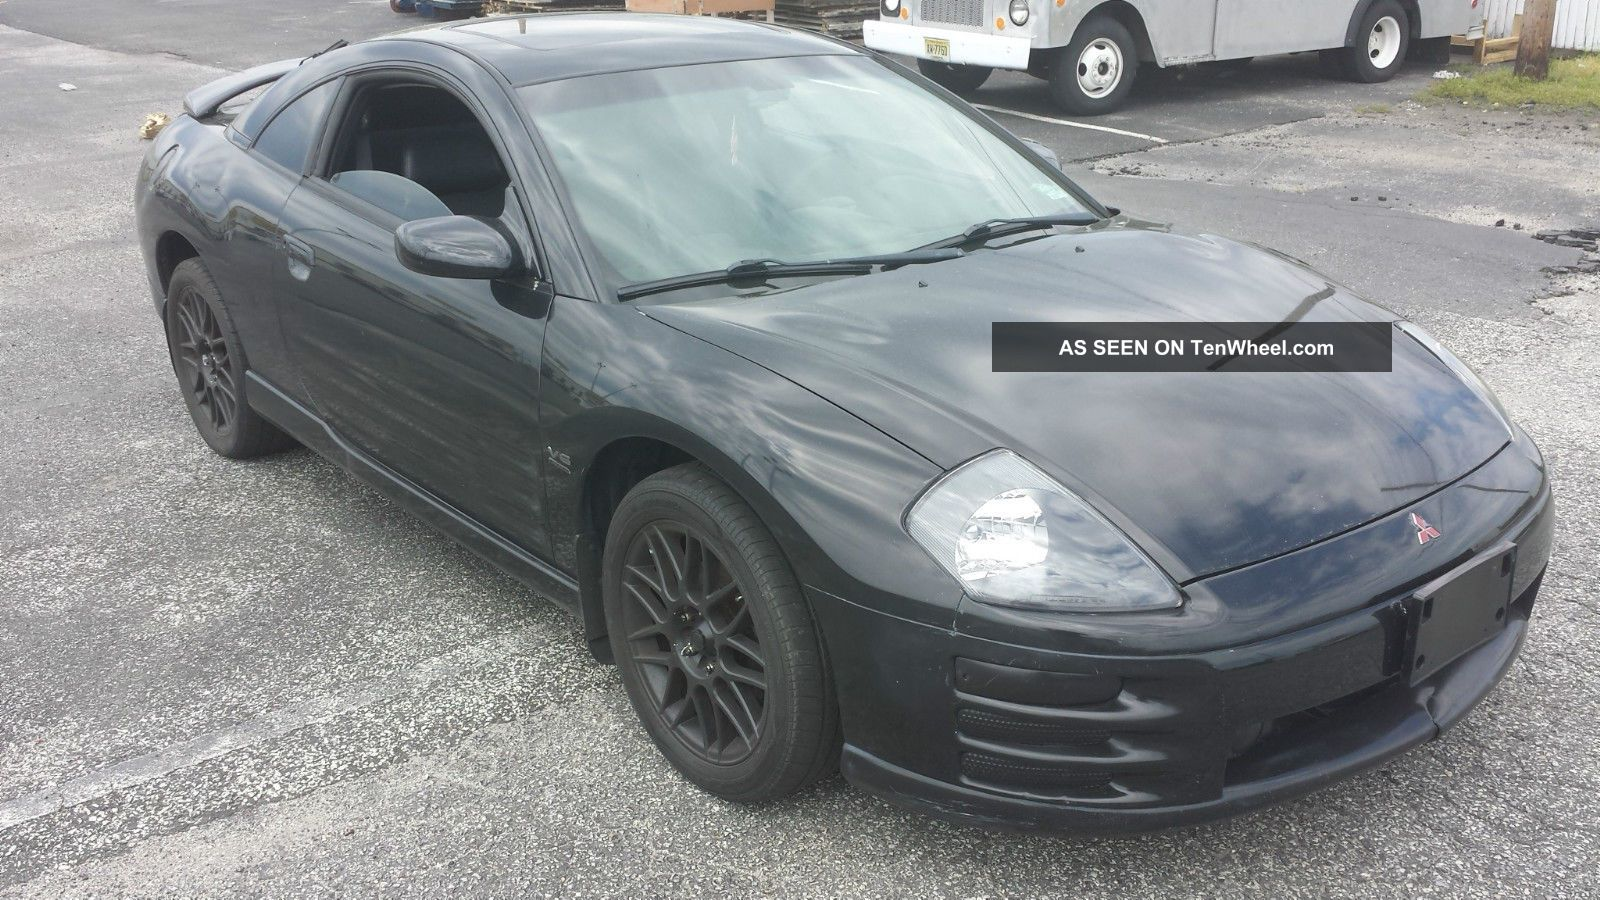 2001 mitsubishi eclipse gt coupe 2 door 3 0l. Black Bedroom Furniture Sets. Home Design Ideas